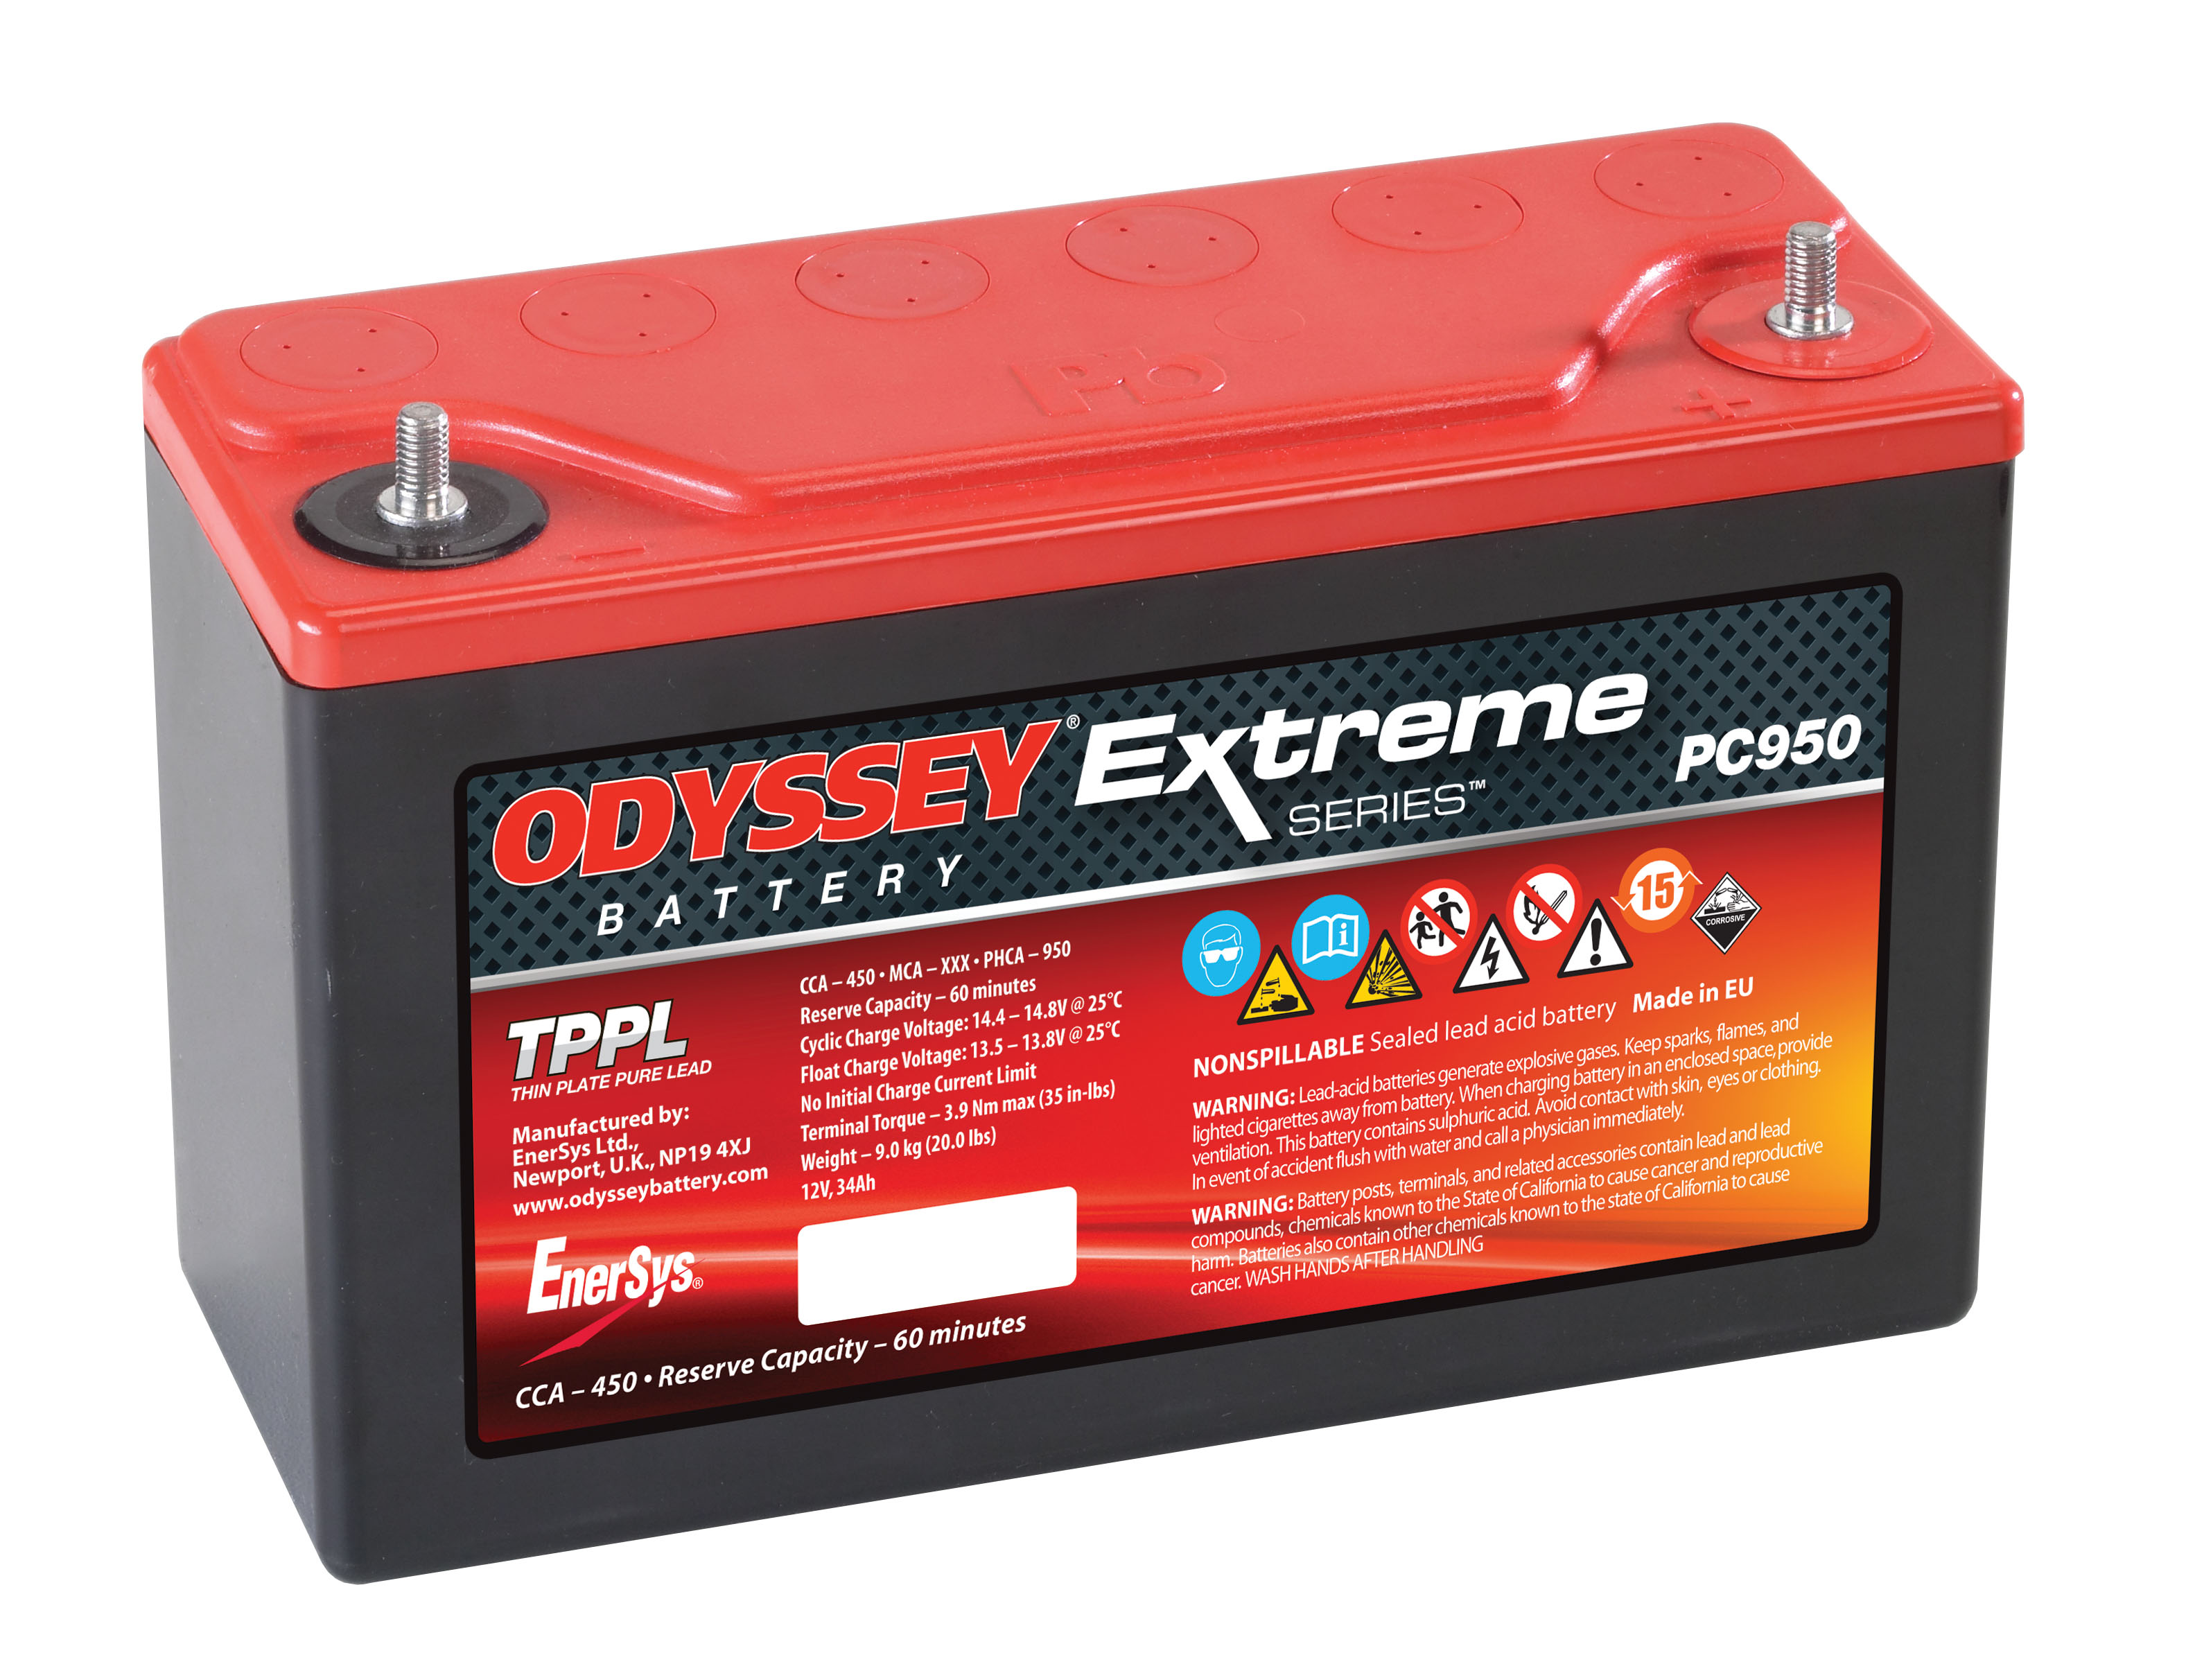 Odyssey Extreme PC950 Product Picture.jpg